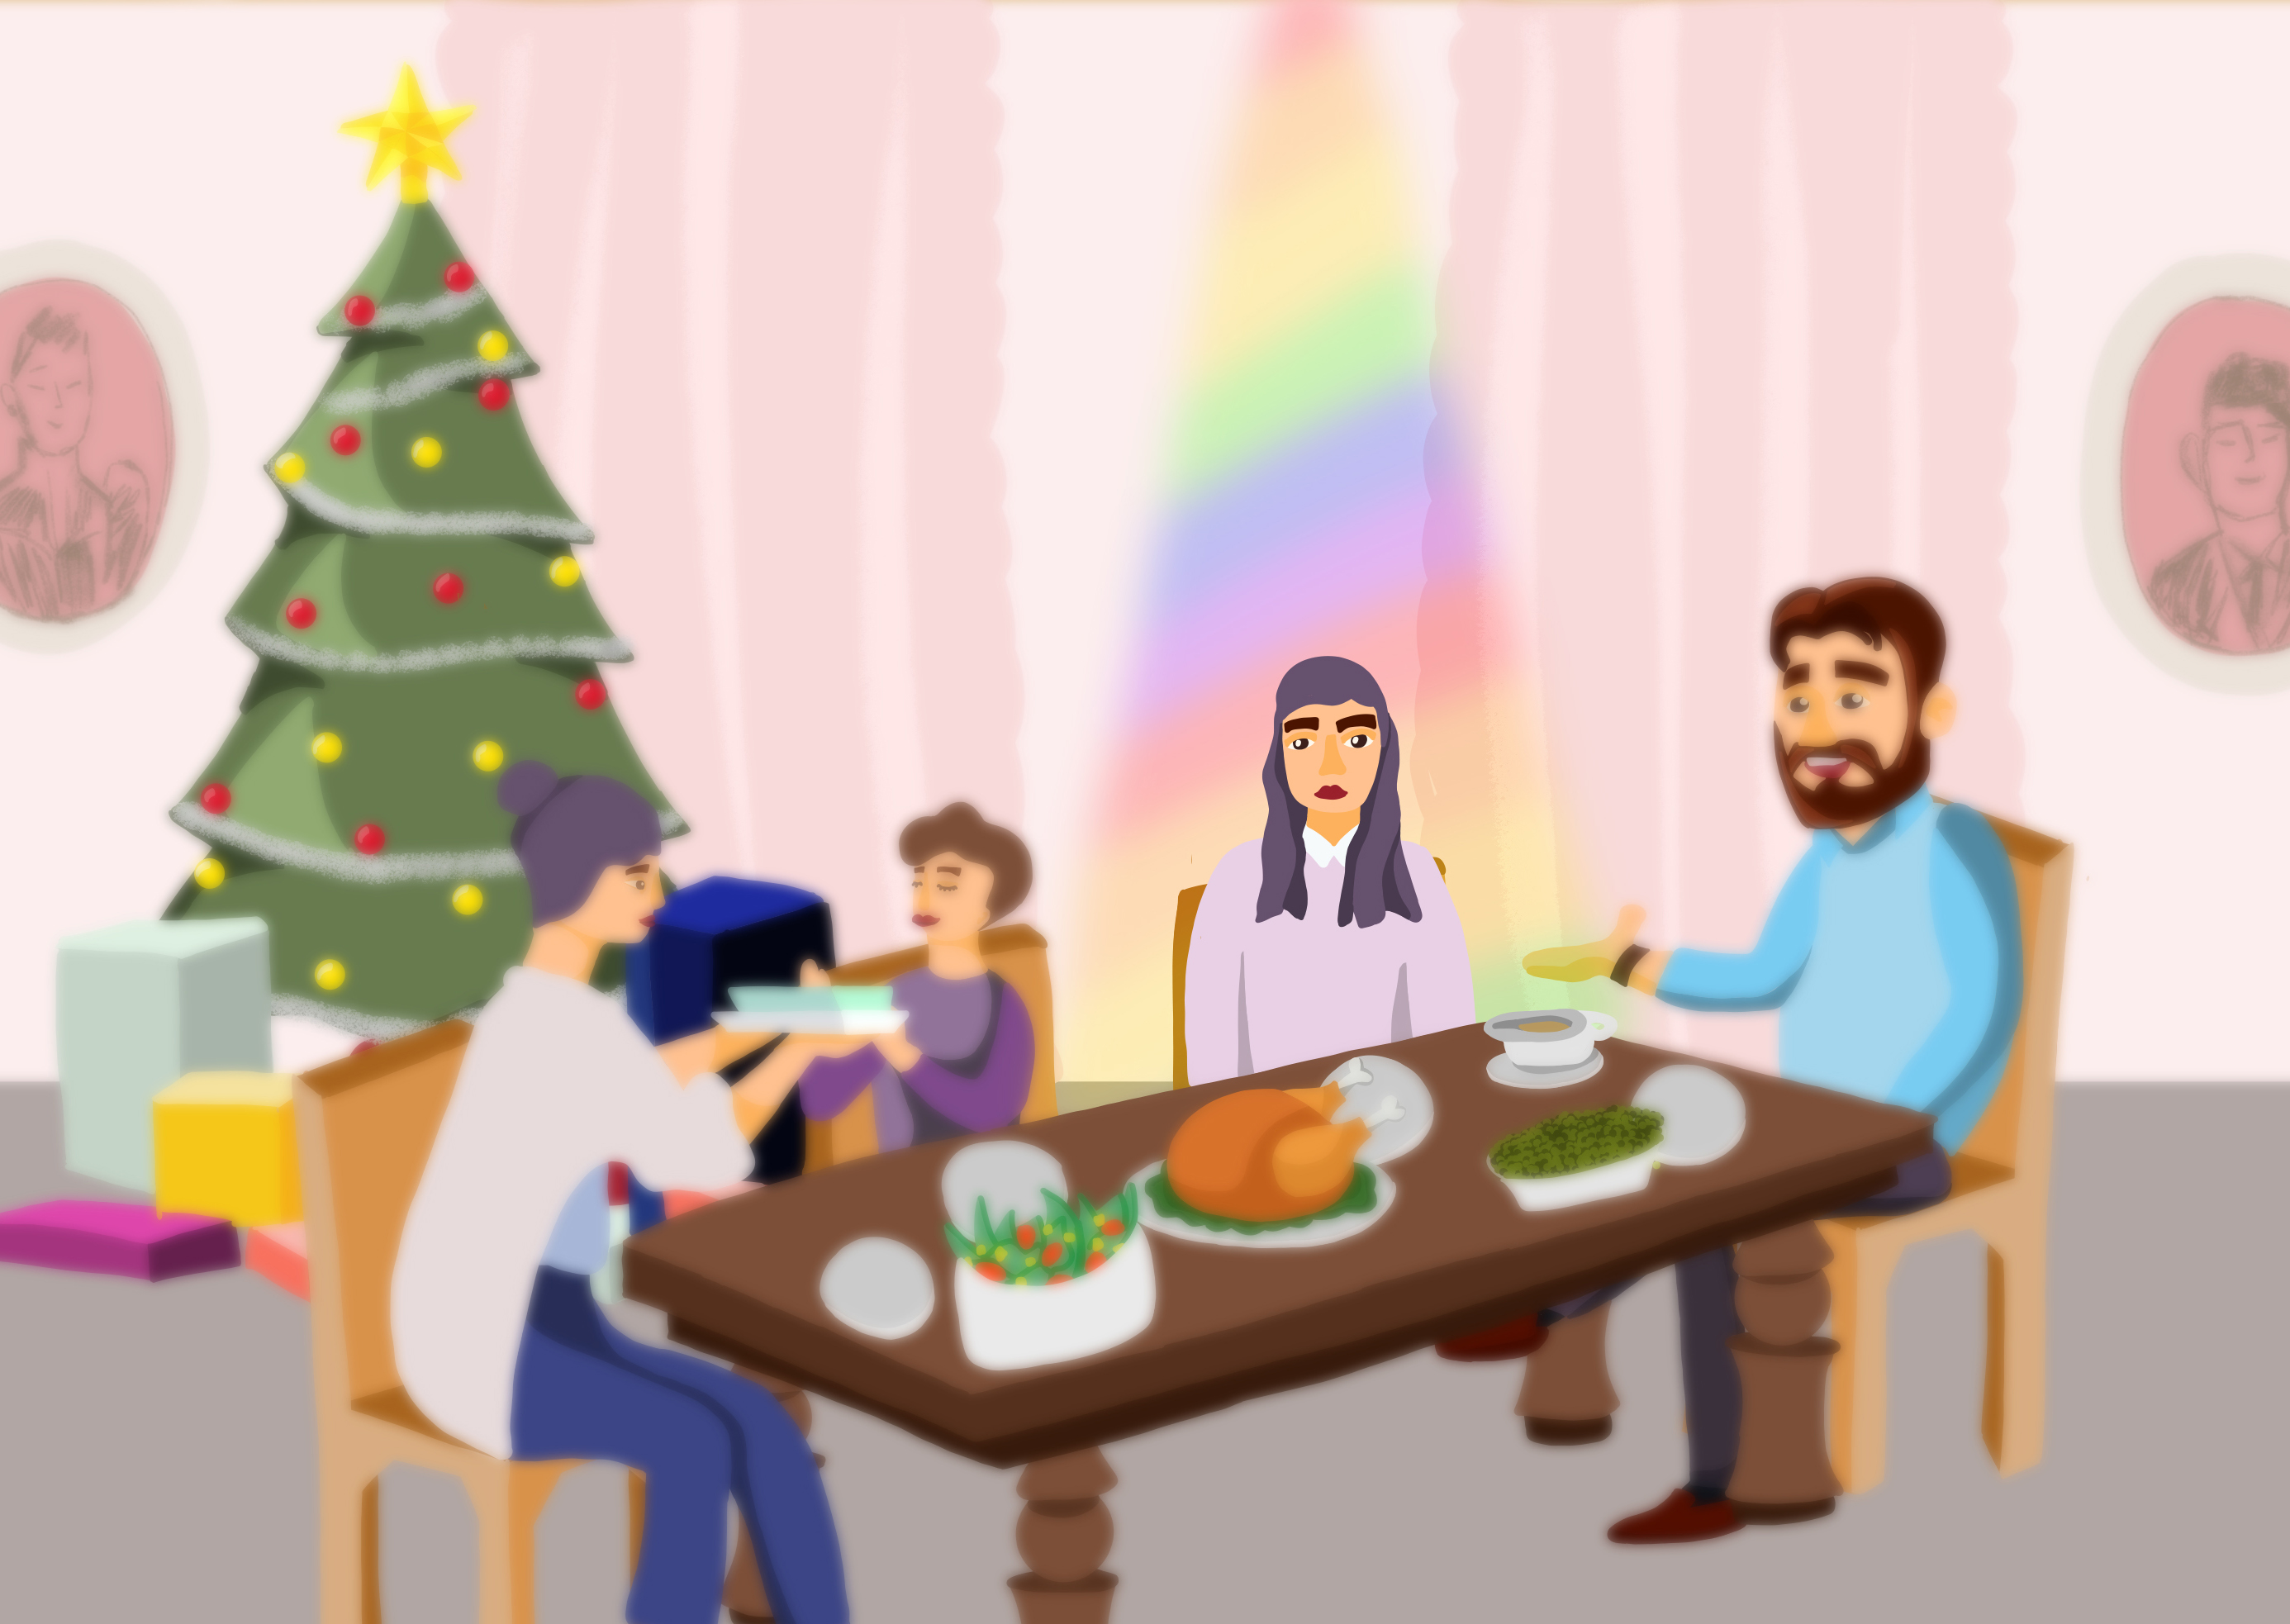 Queer at Christmas: The struggles of being LGBT during the holidays